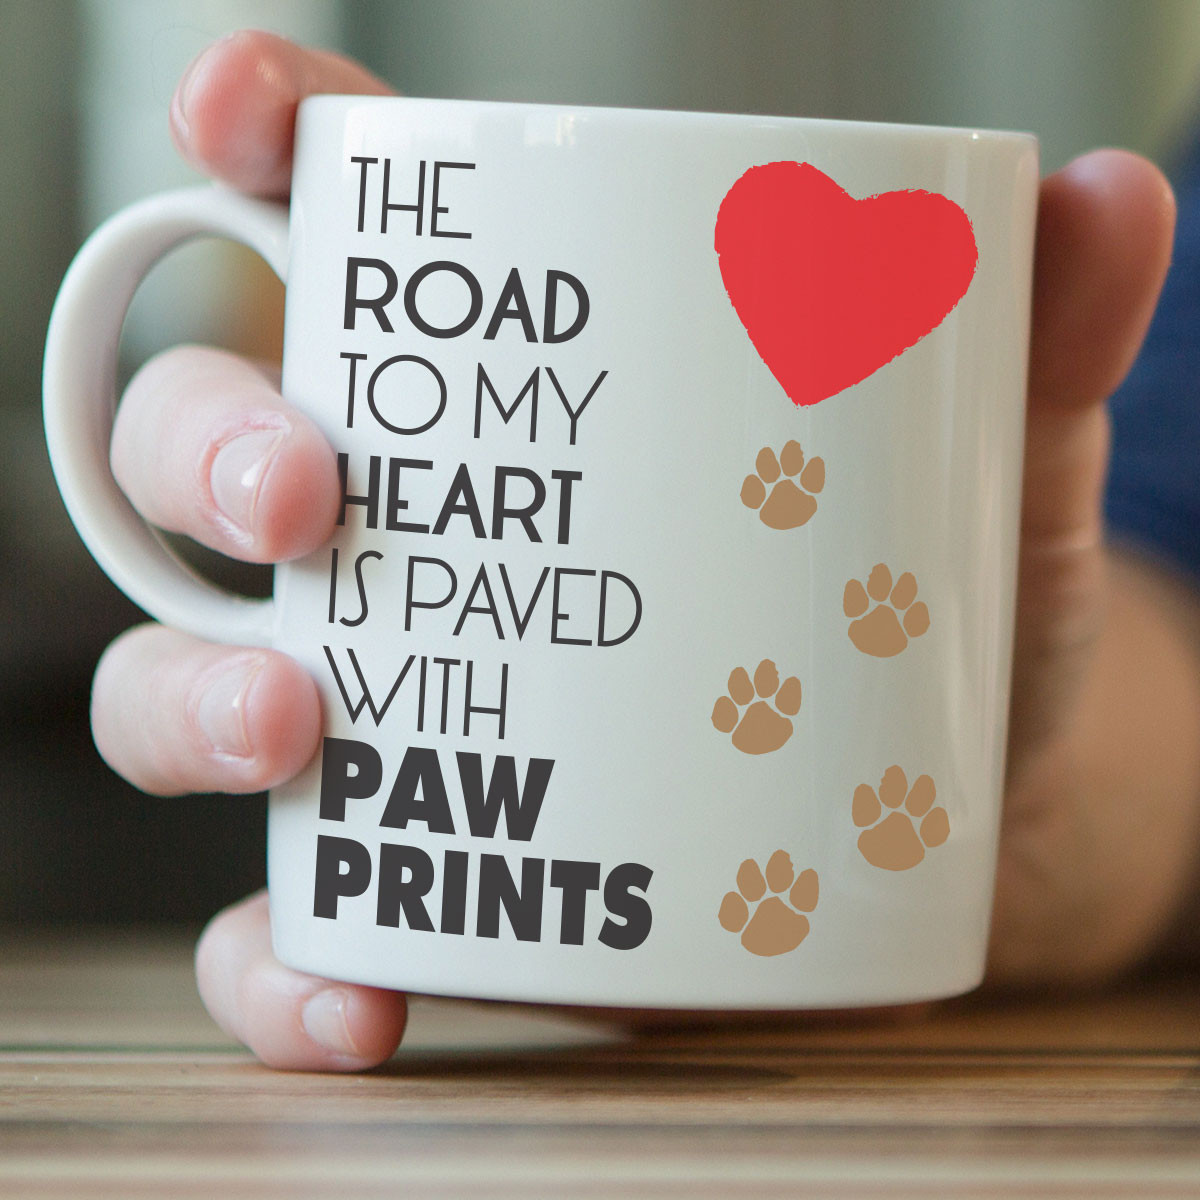 The Road To My Heart Is Paved With Paw Prints Mug